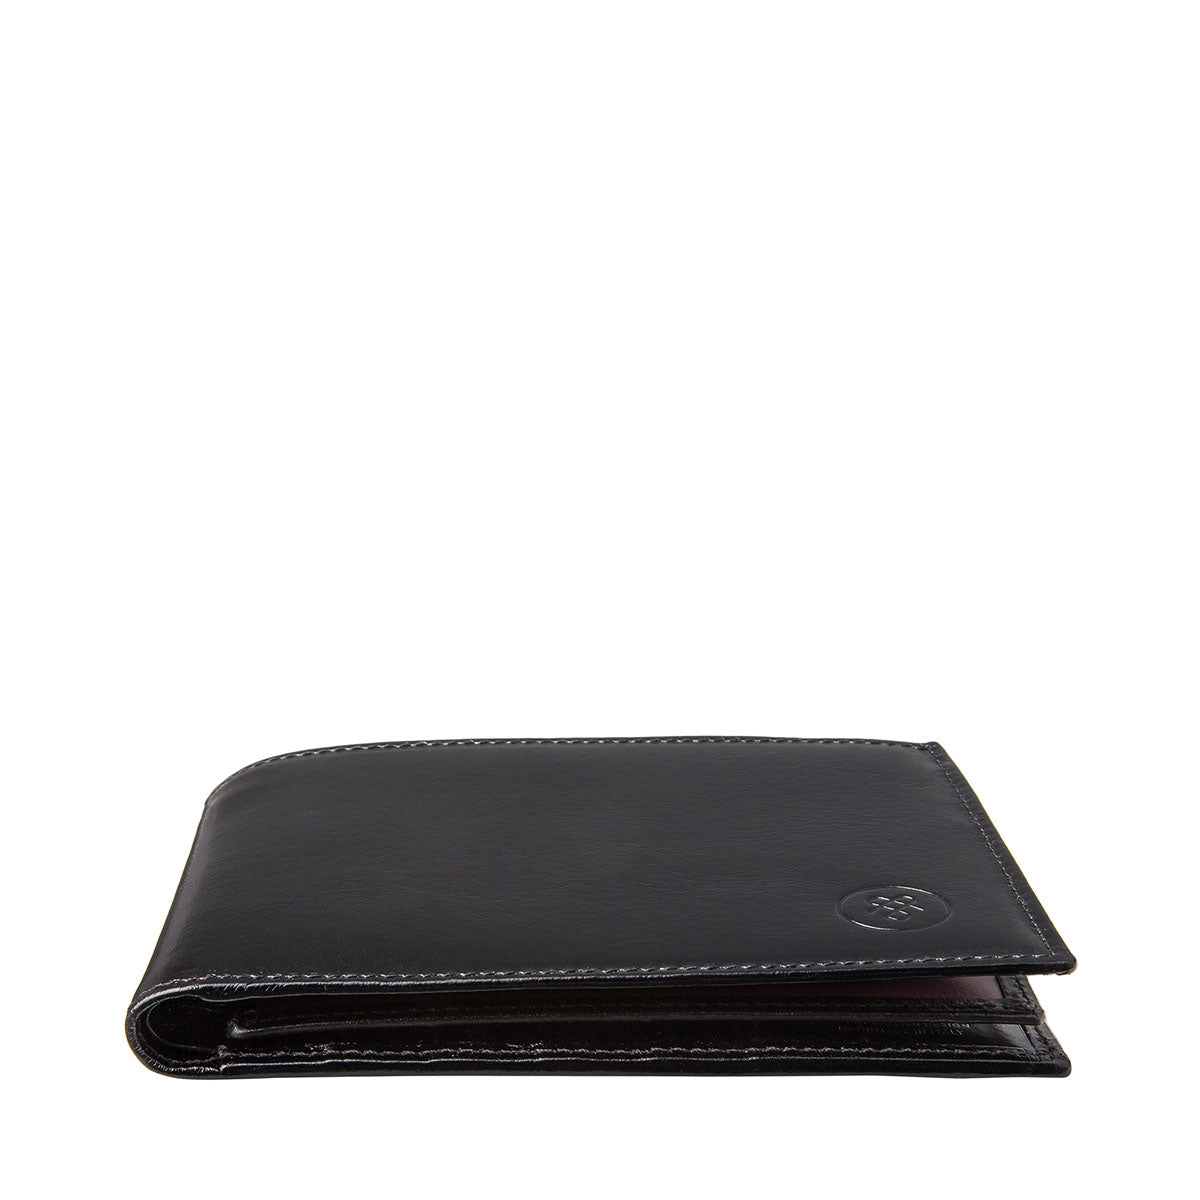 Image 6 of the 'Gallucio' Black Veg-Tanned Leather Mens Tri Fold Wallet